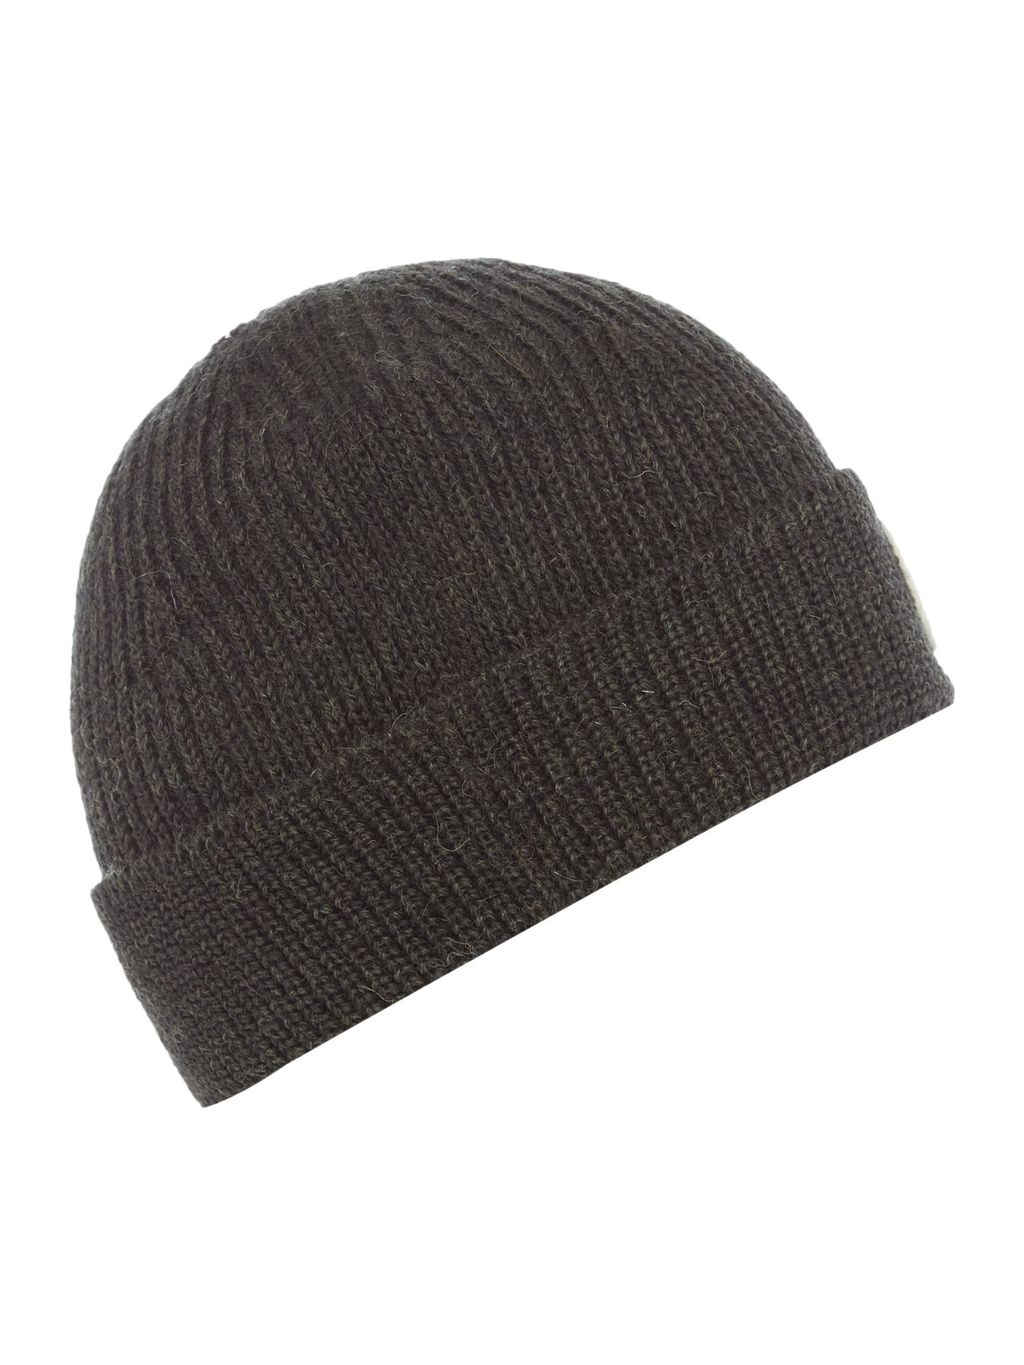 Knitted Beanie Hat, Green - predominant colour: dark green; occasions: casual; type of pattern: standard; style: beanie; size: standard; material: knits; pattern: plain; season: s/s 2016; wardrobe: highlight